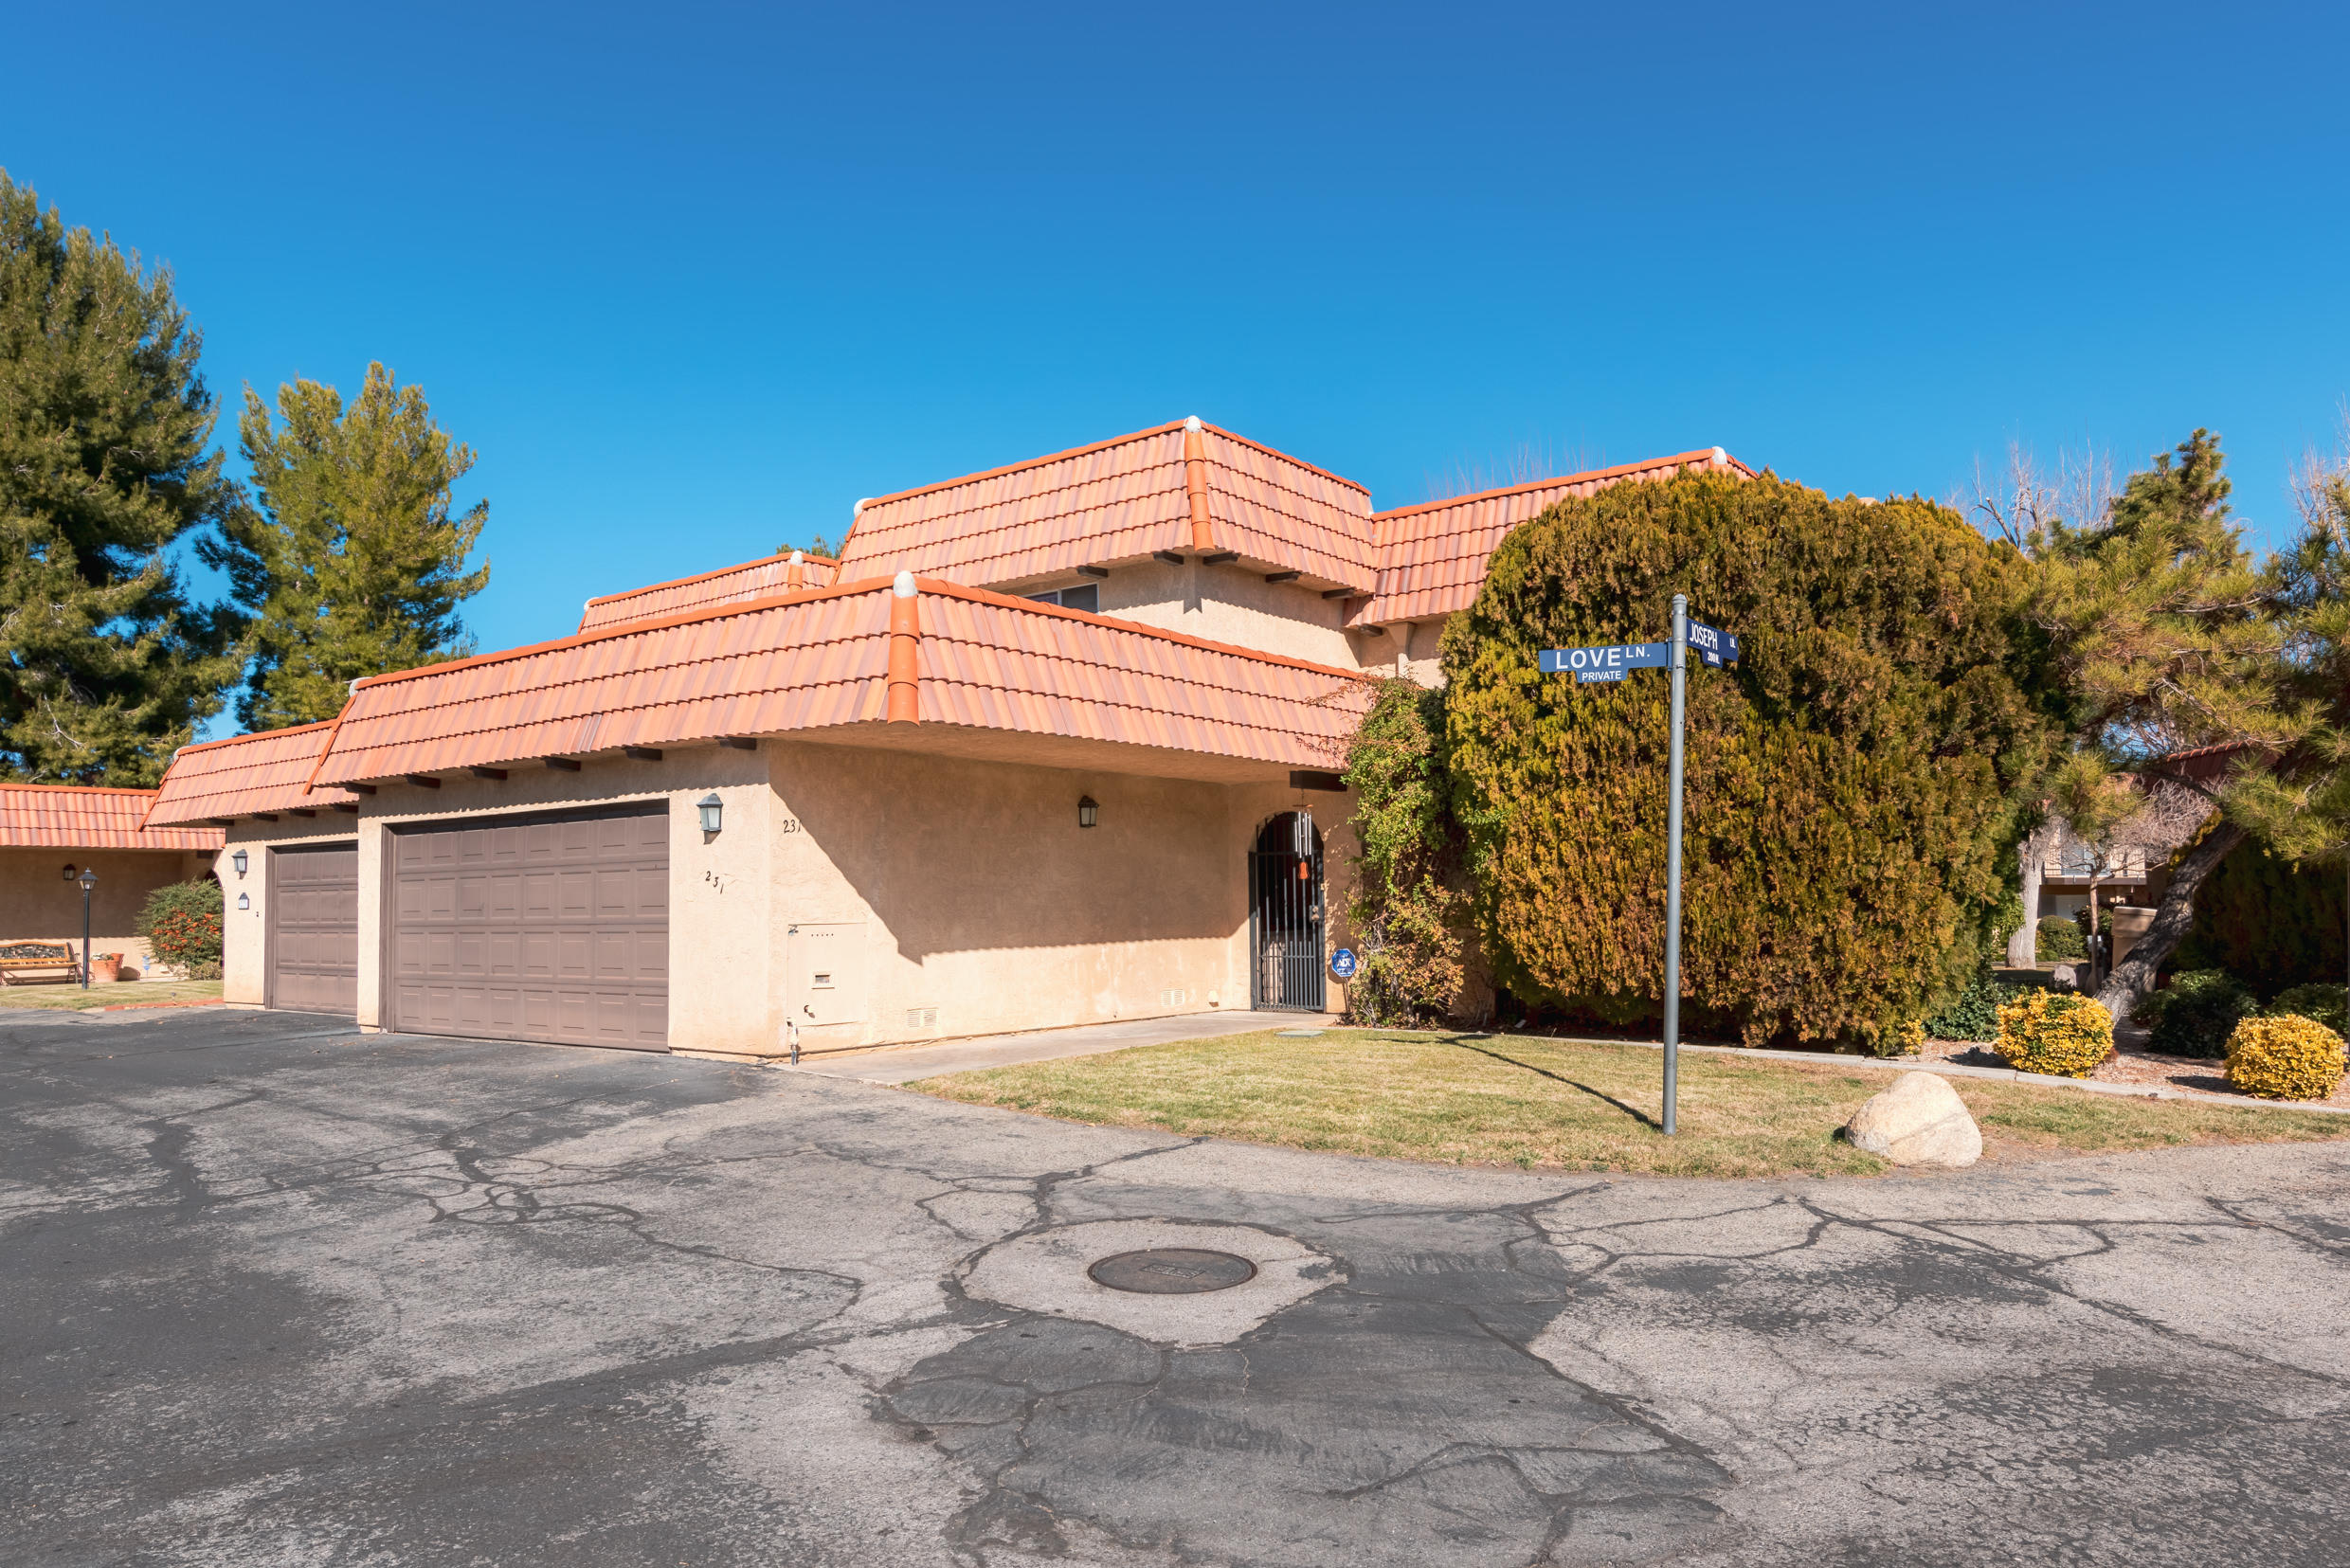 231  Love Lane, one of homes for sale in Palmdale